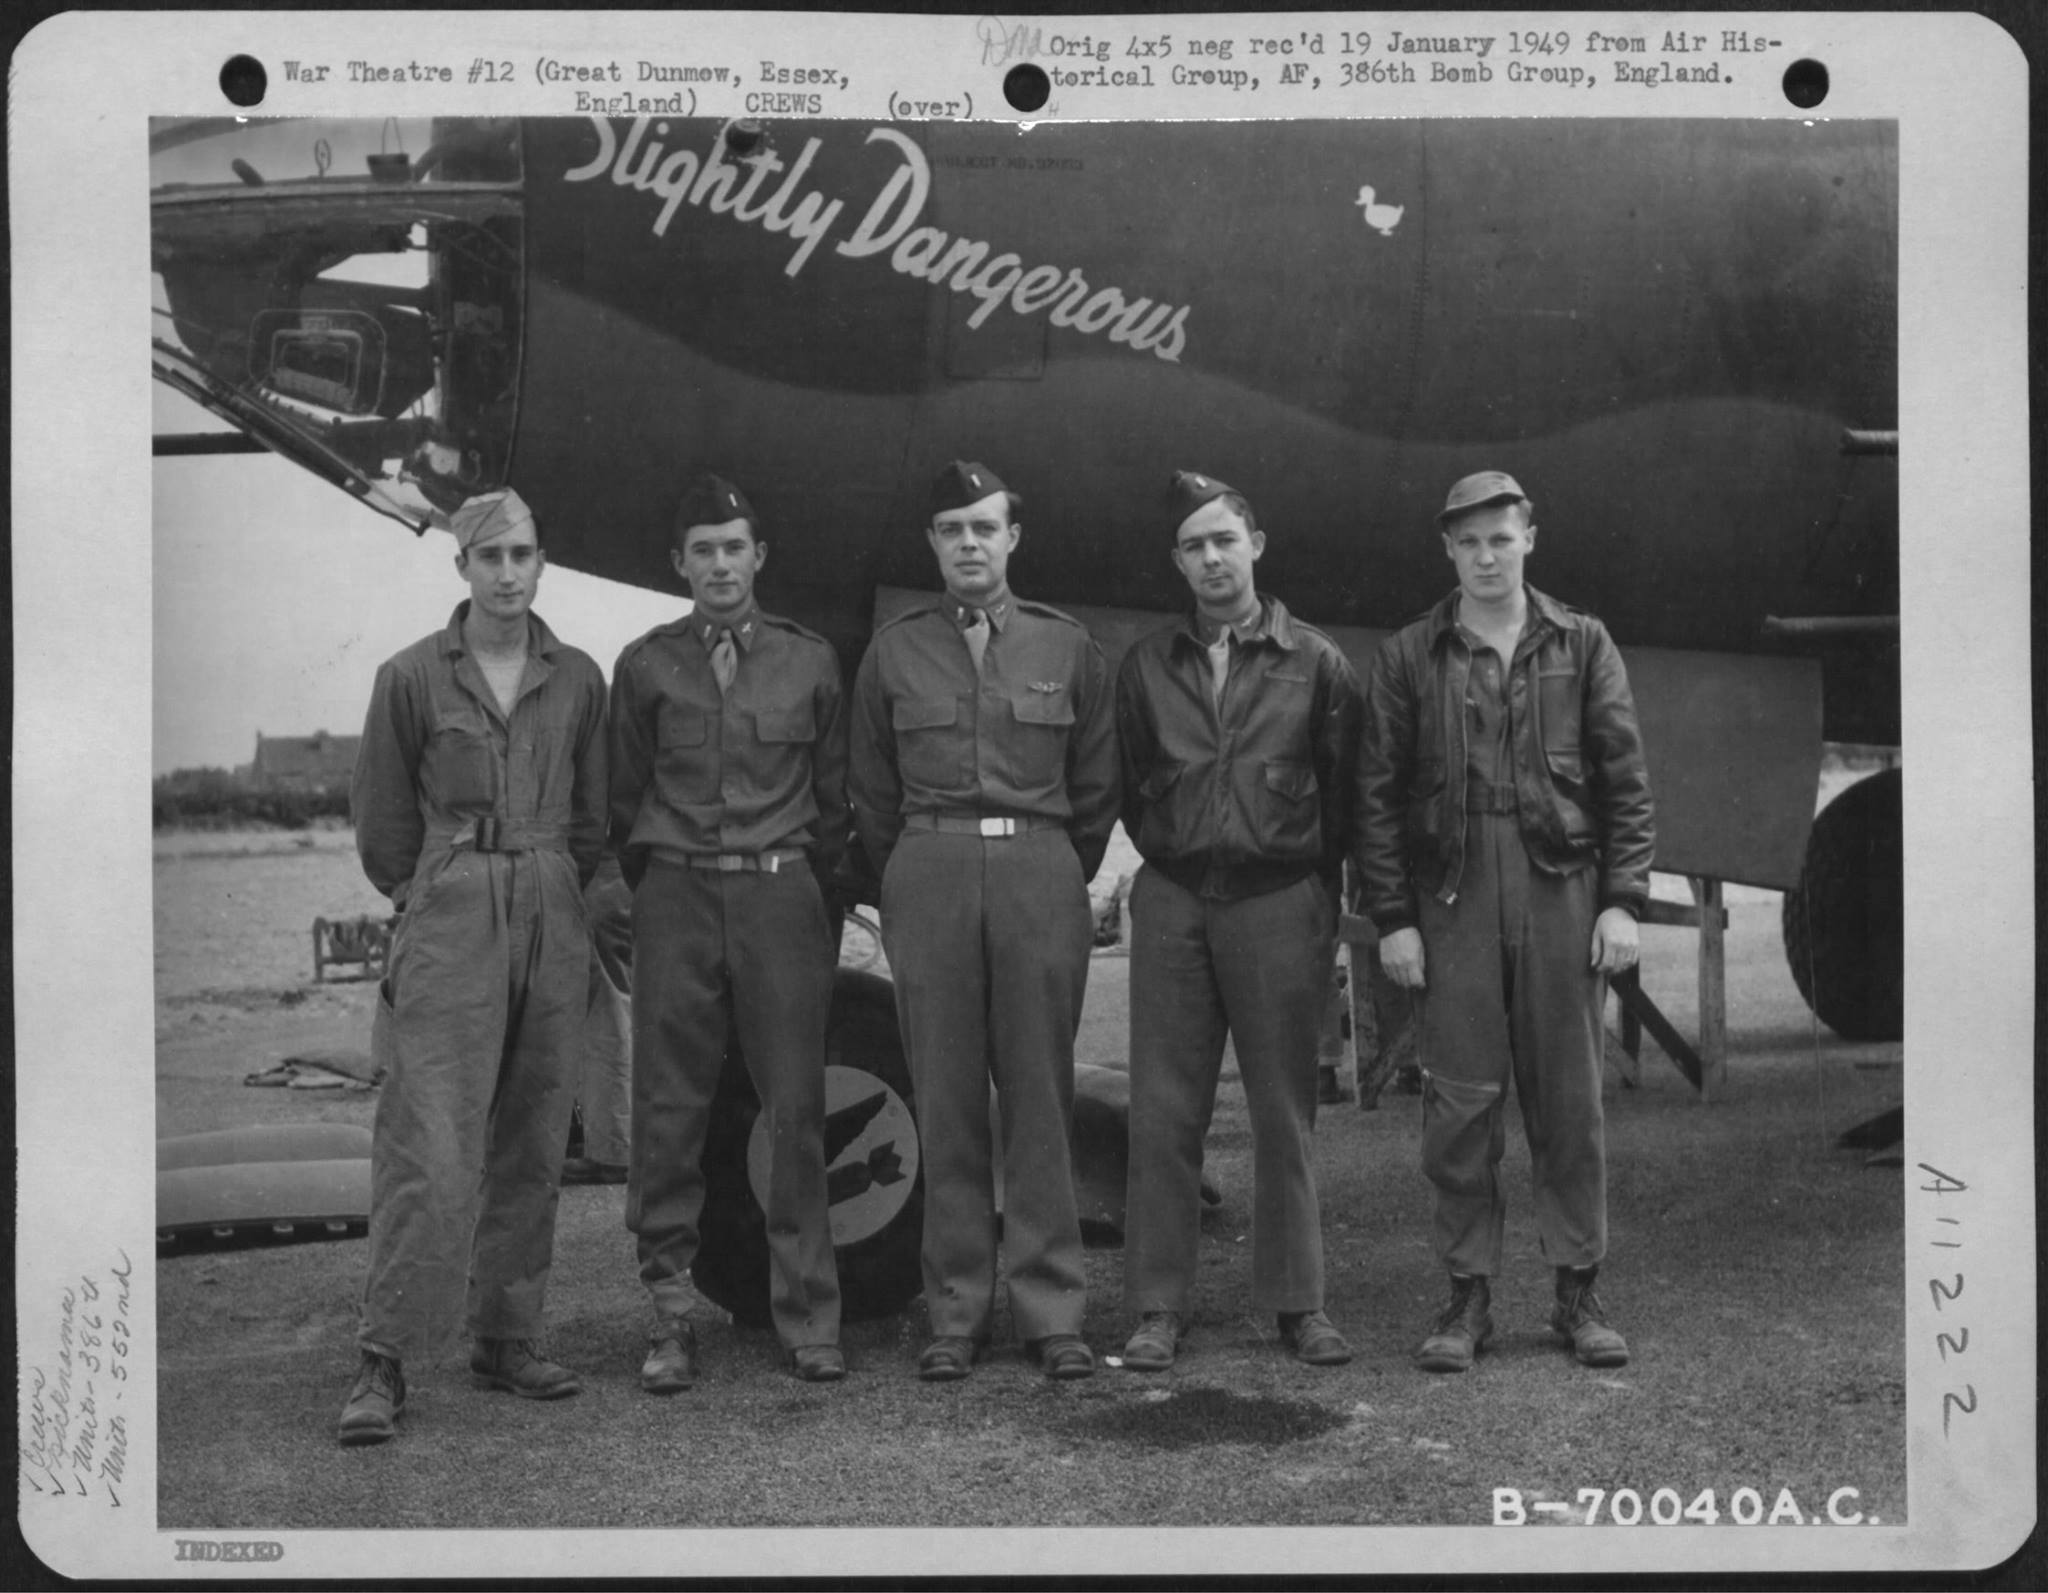 USAAF 41 31741 B 26B Marauder 386BG552BS RGD Slightly Dangerous with crew Great Dunmow Essex Engalnd 1 Sep 1943 01